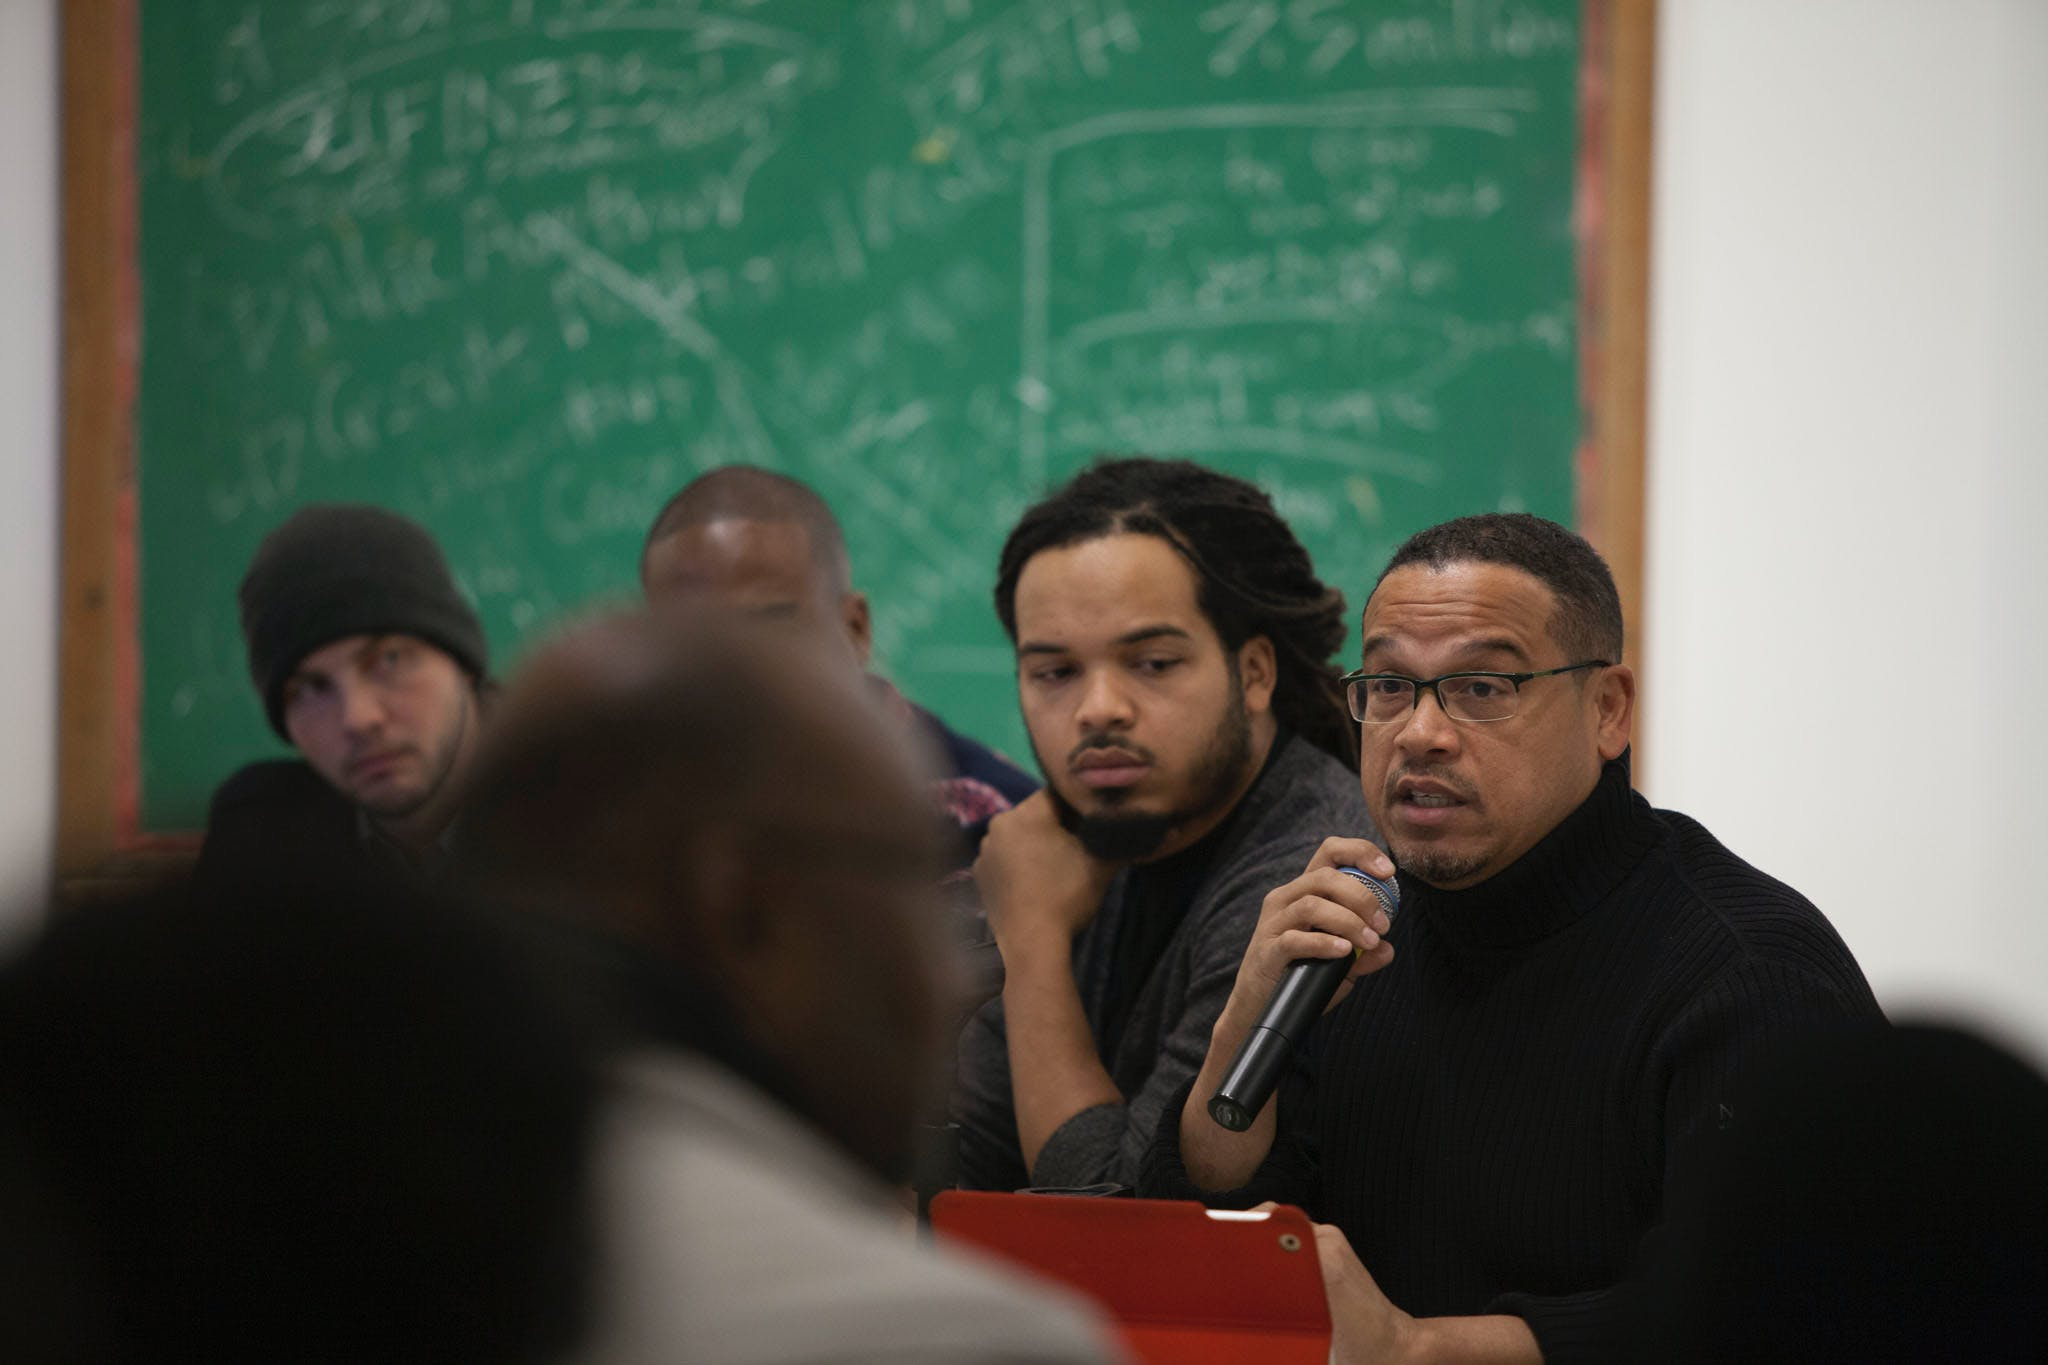 Holding Court: Congressman Keith Ellison, 2014; part of the exhibition Radical Presence: Black Performance in Contemporary Art, 2014